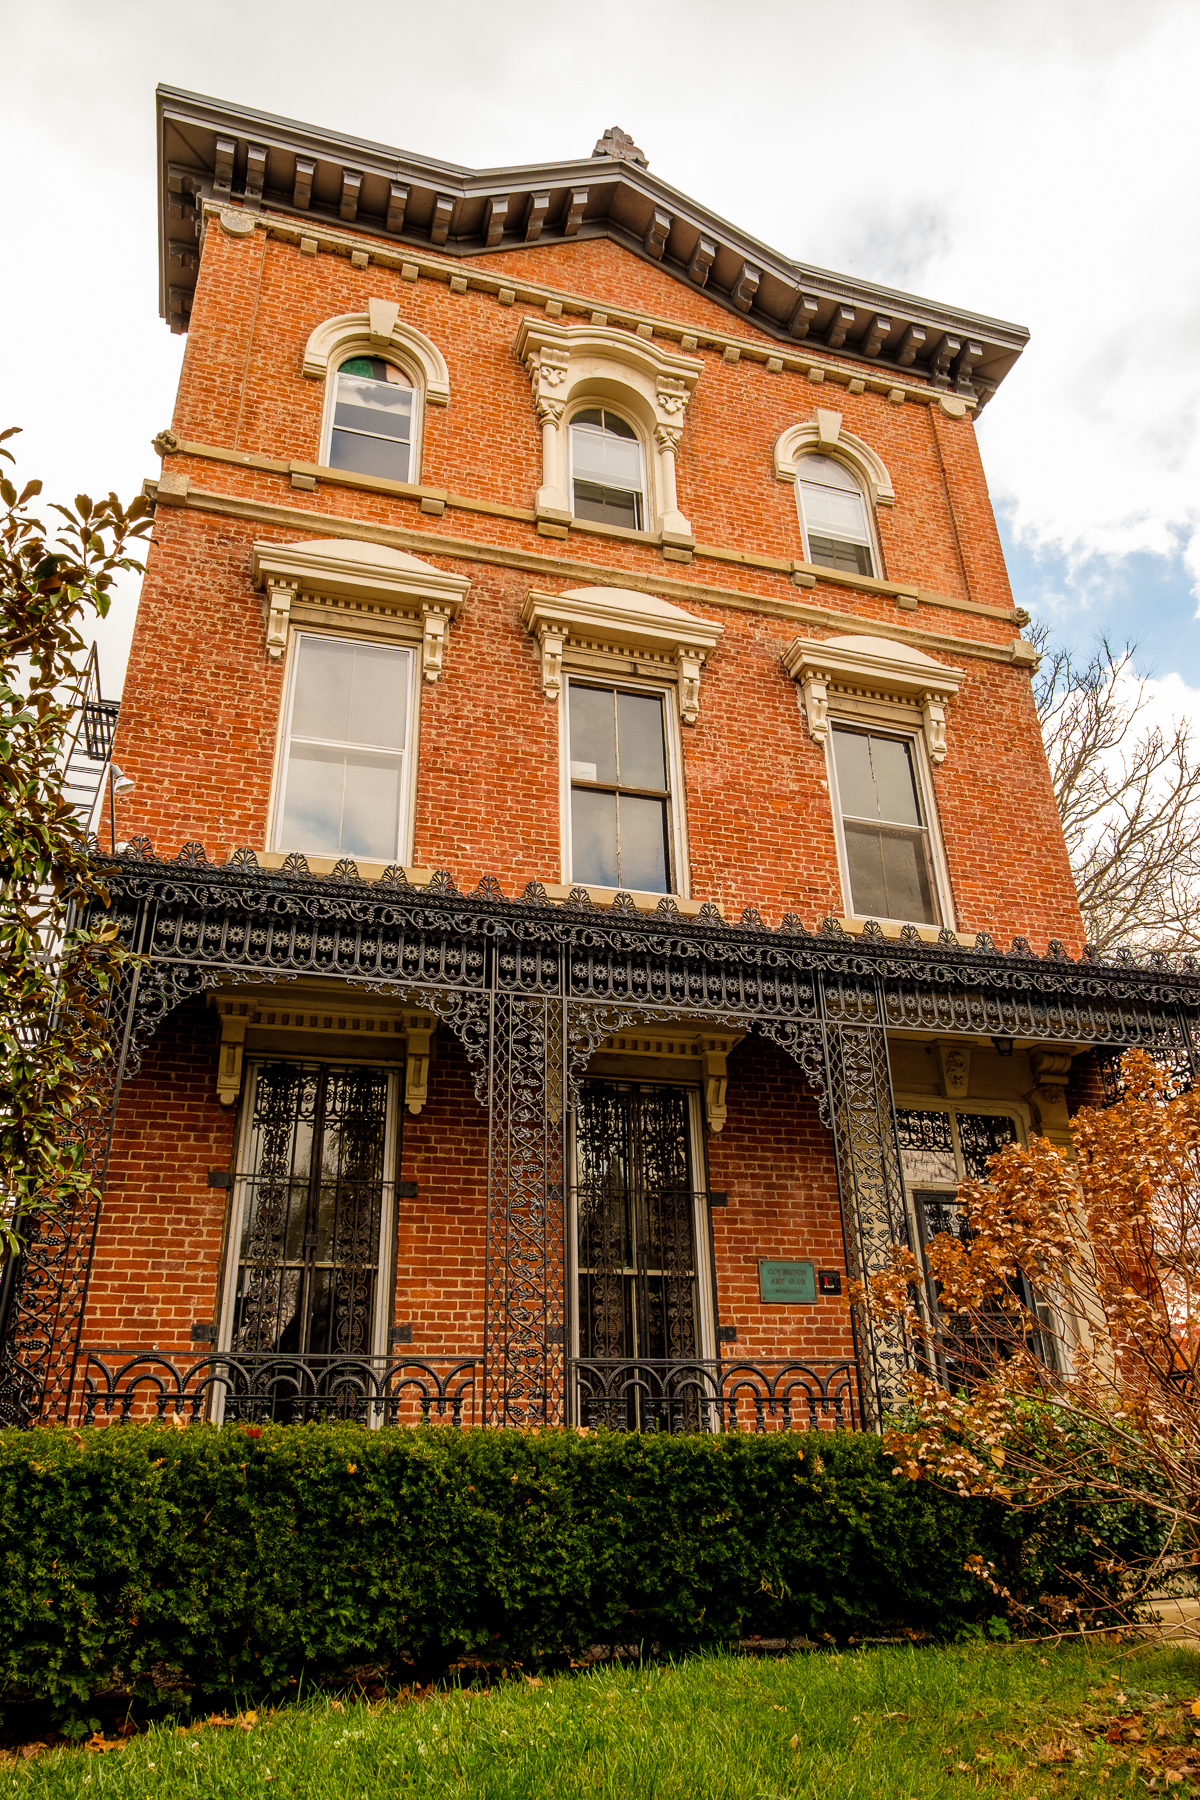 Two Victorian mansions, a 1920s auditorium, and lush, landscaped grounds comprise the Baker Hunt Art & Cultural Center in the Historic Licking River Neighborhood of Covington. Over 40 instructor-based classes, ranging from acrylic painting to social dancing are offered at the campus. ADDRESS: 620 Greenup Street, Covington, KY 41011 / Image: Daniel Smyth // Published: 12.11.16